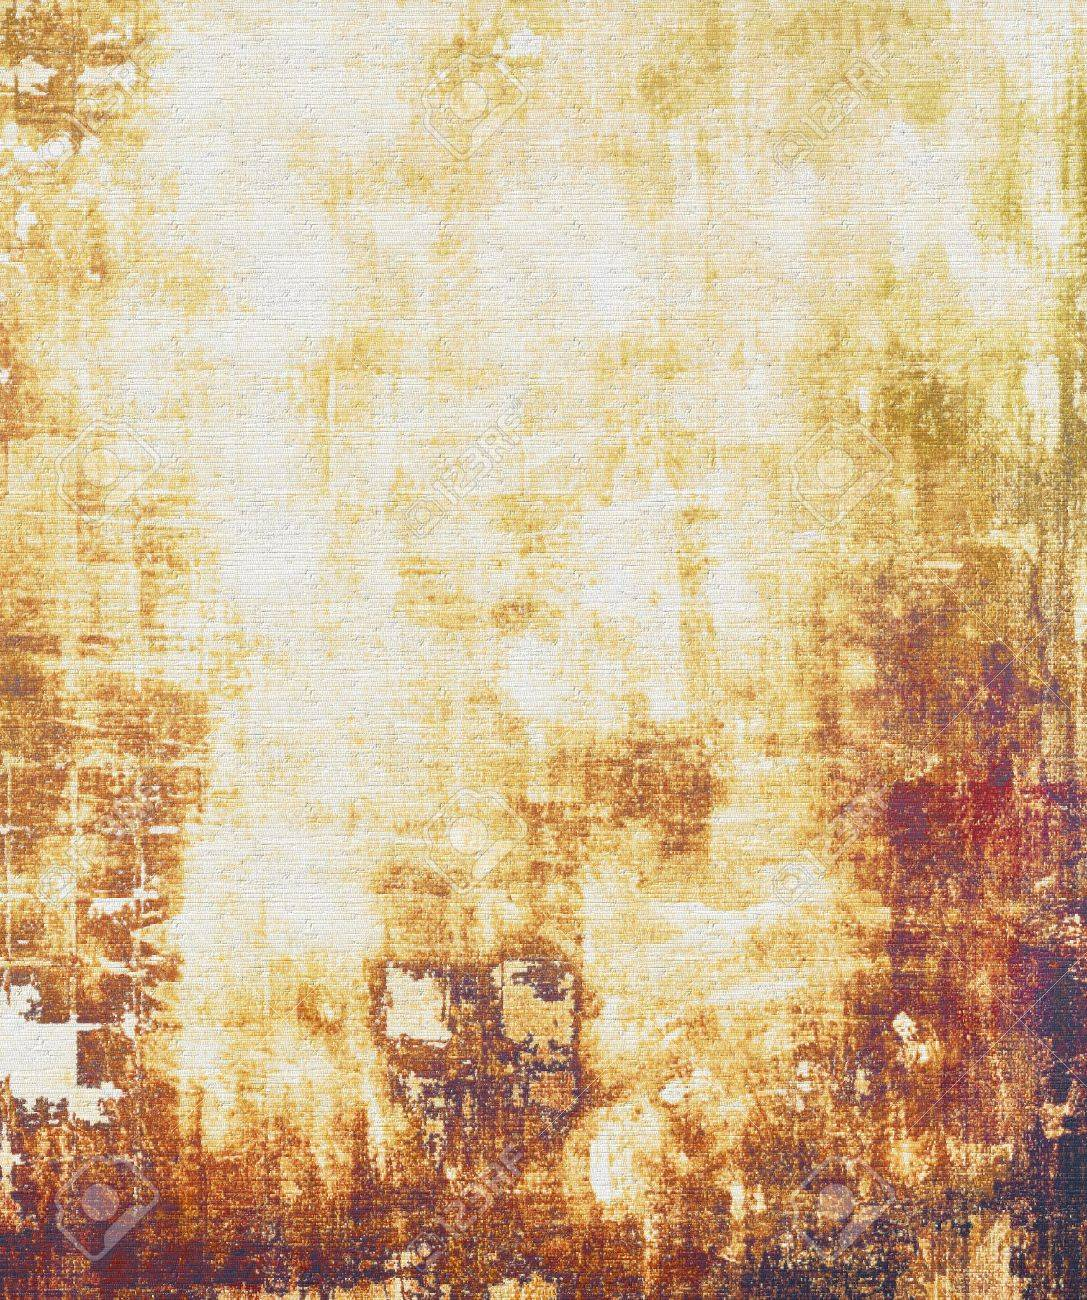 Antique Vintage Texture Old fashioned Weathered Background 1087x1300